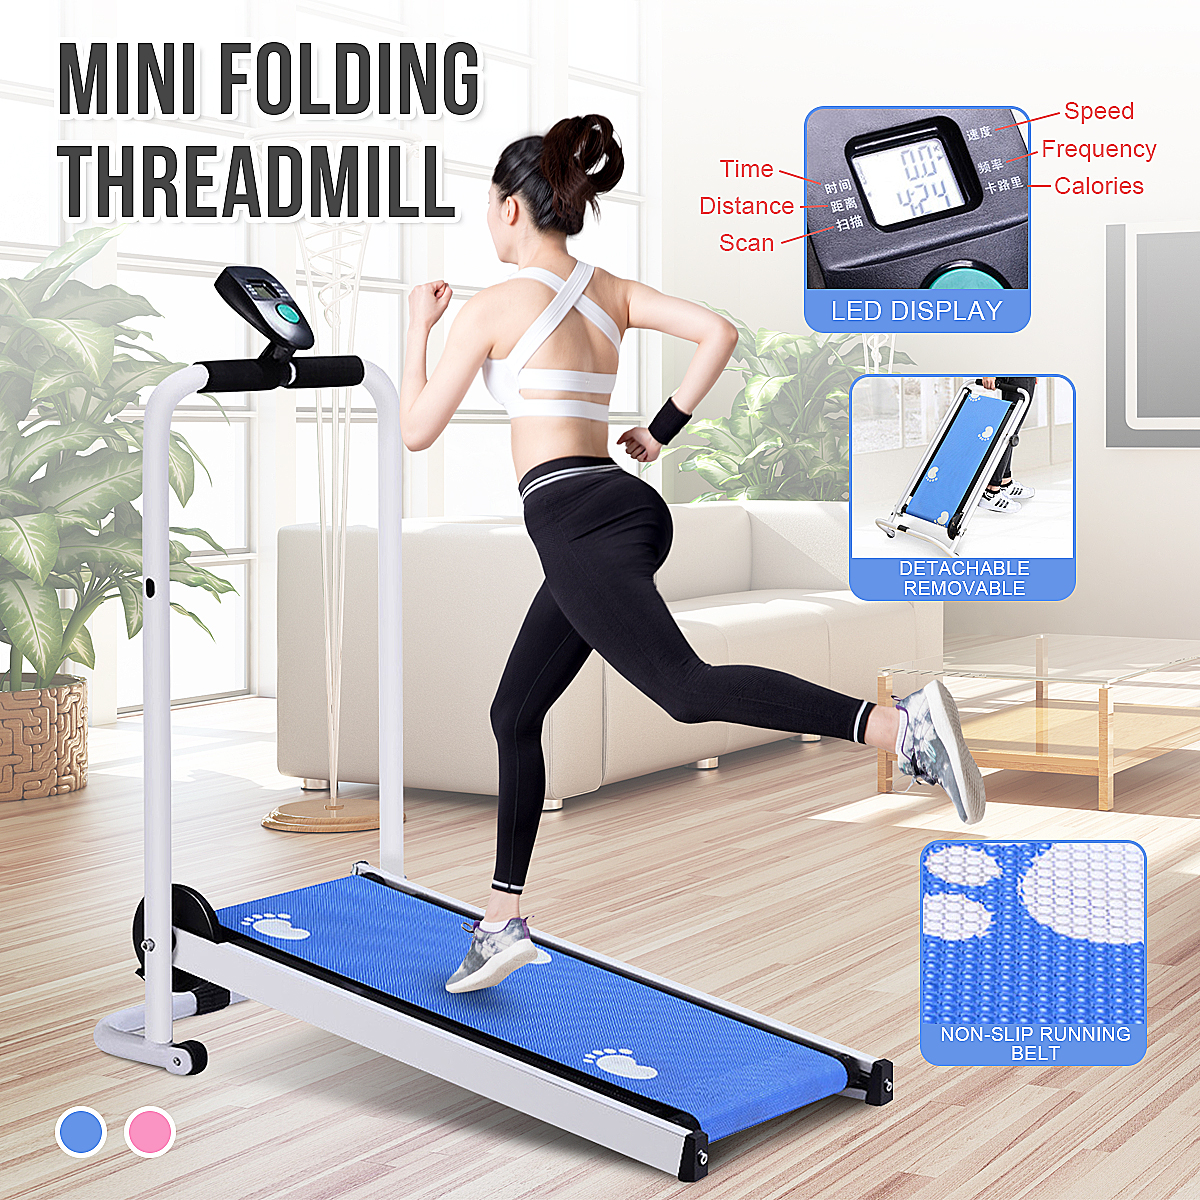 Electric Foldable Treadmill LED Display Jog Space Walk Machine Aerobic Sport Fitness Equipment No Floor Space Easy To Move